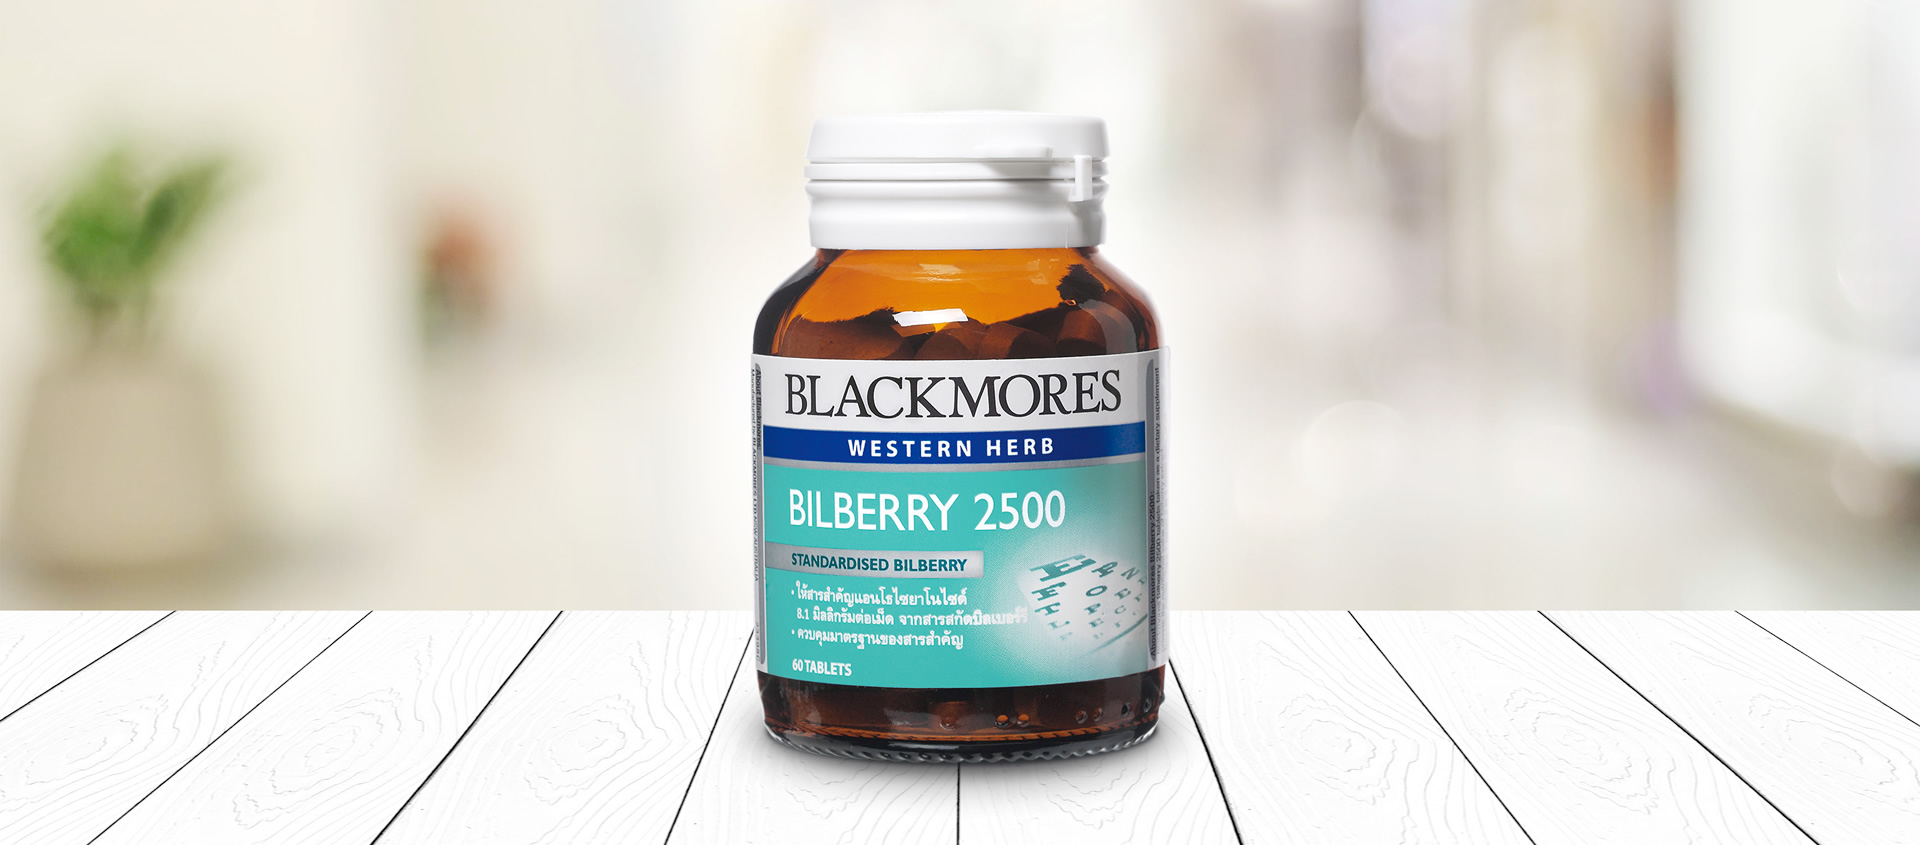 Blackmore Bilberry 2500mg 60's